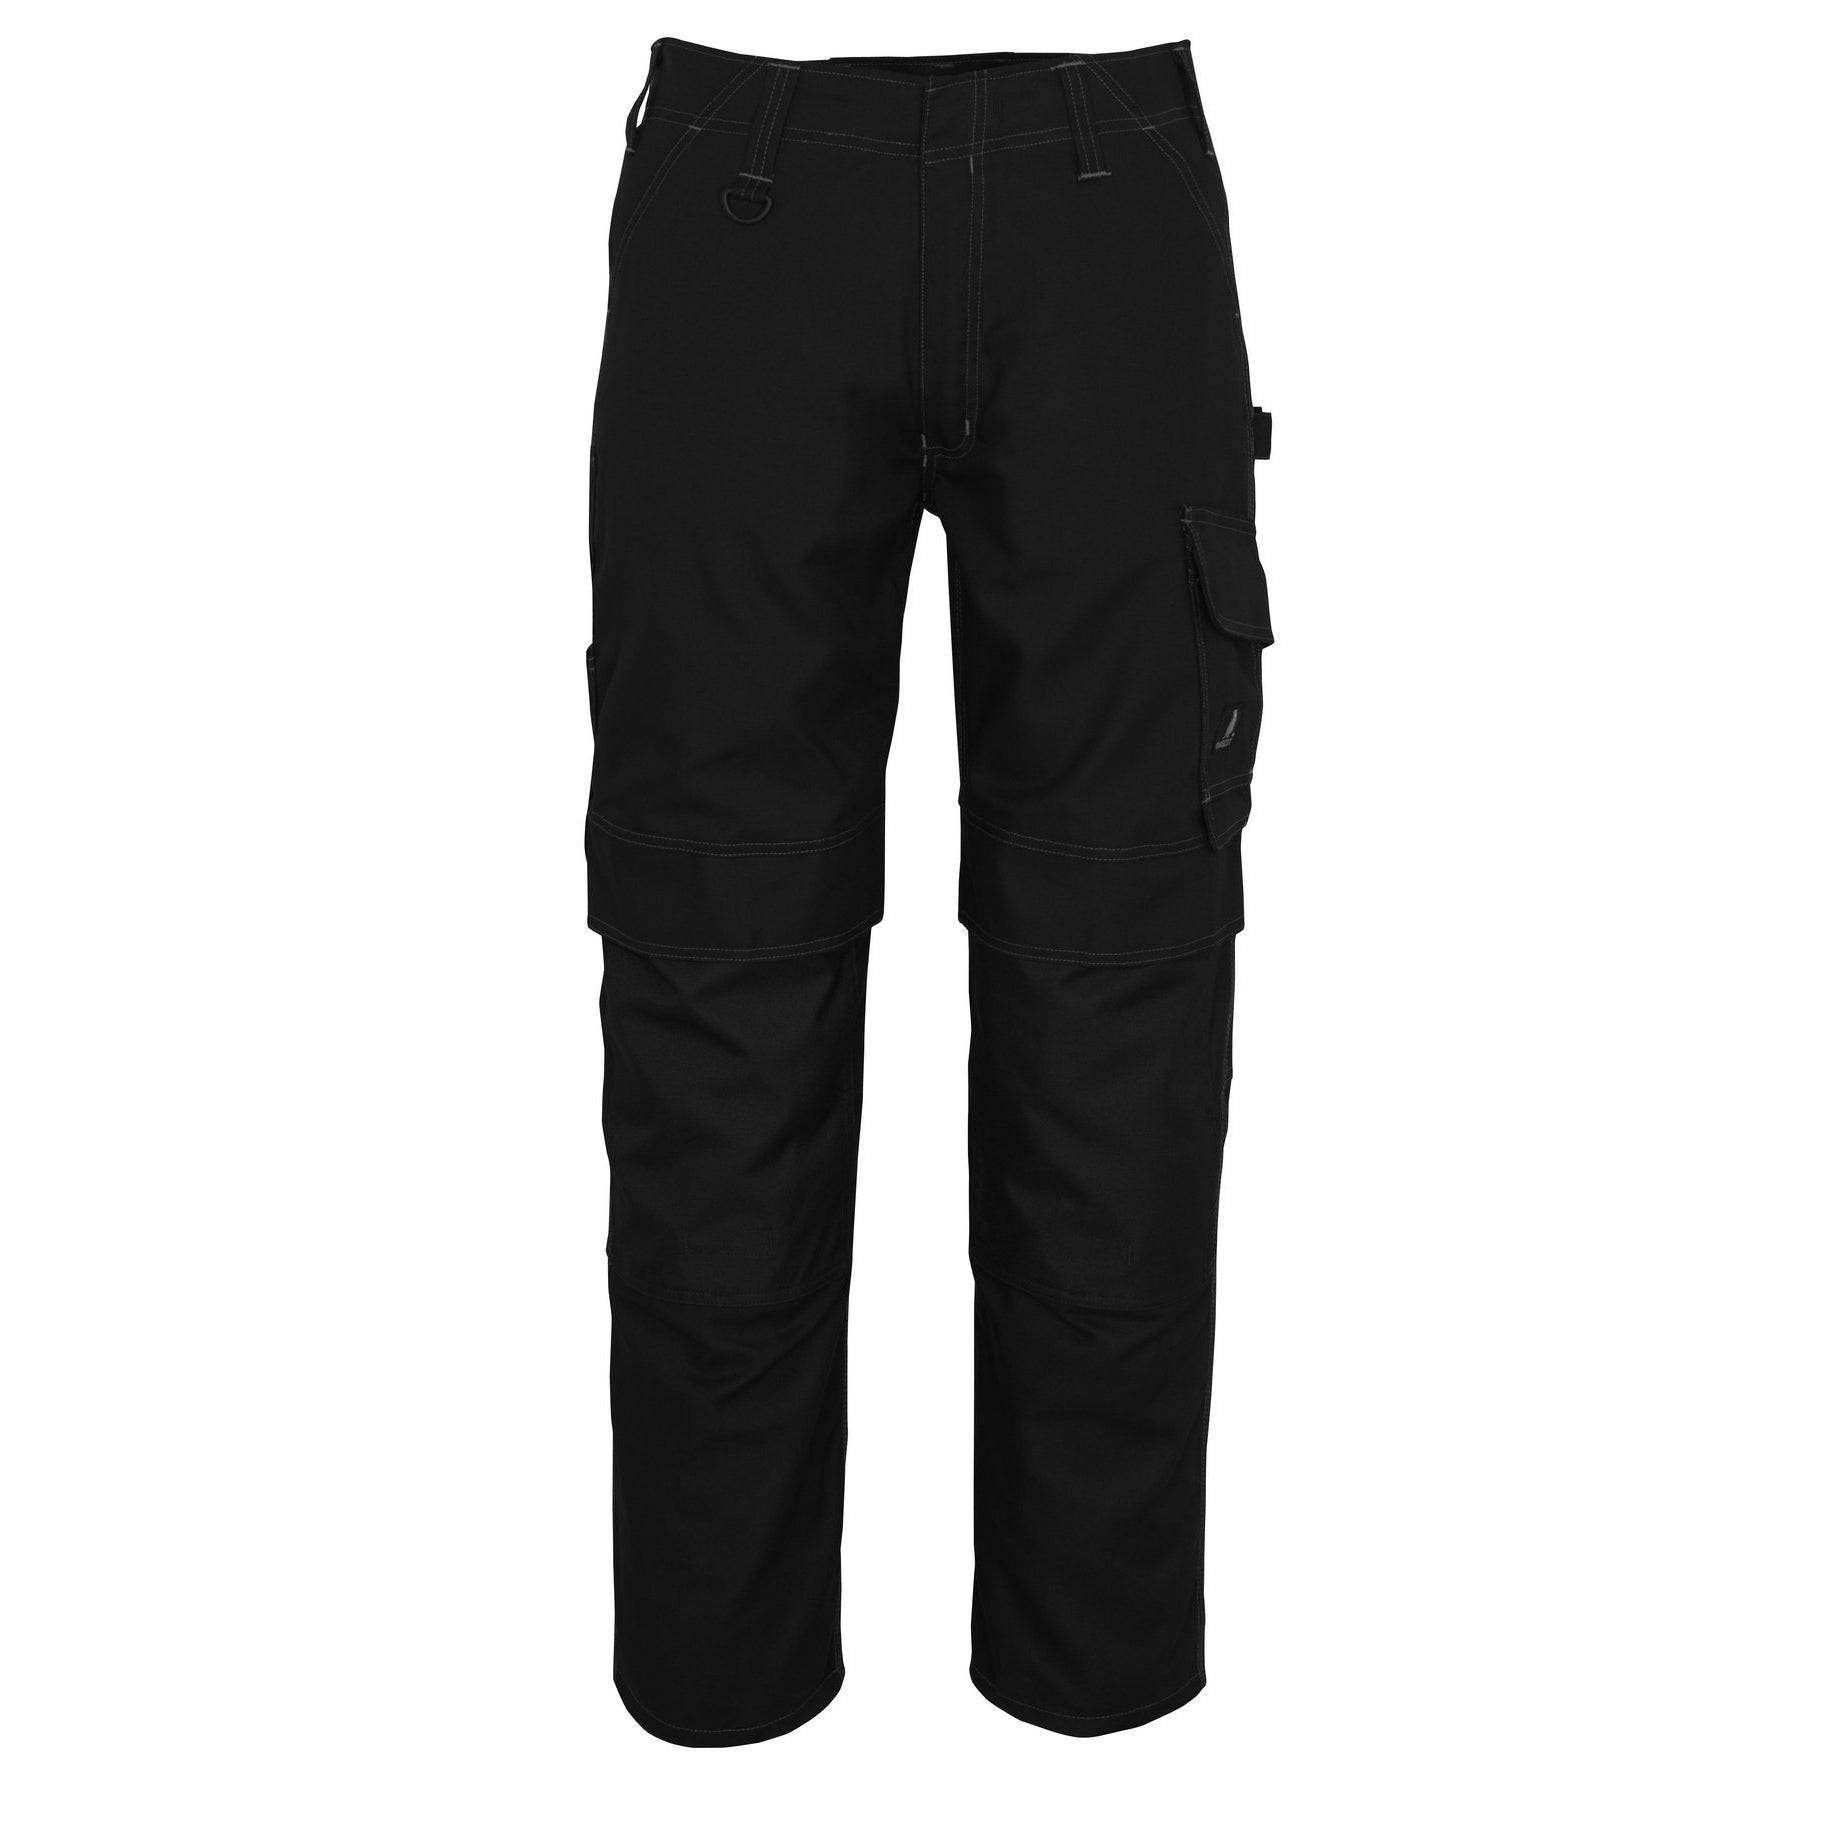 Mascot Houston Industry Trousers With Kneepad Pockets